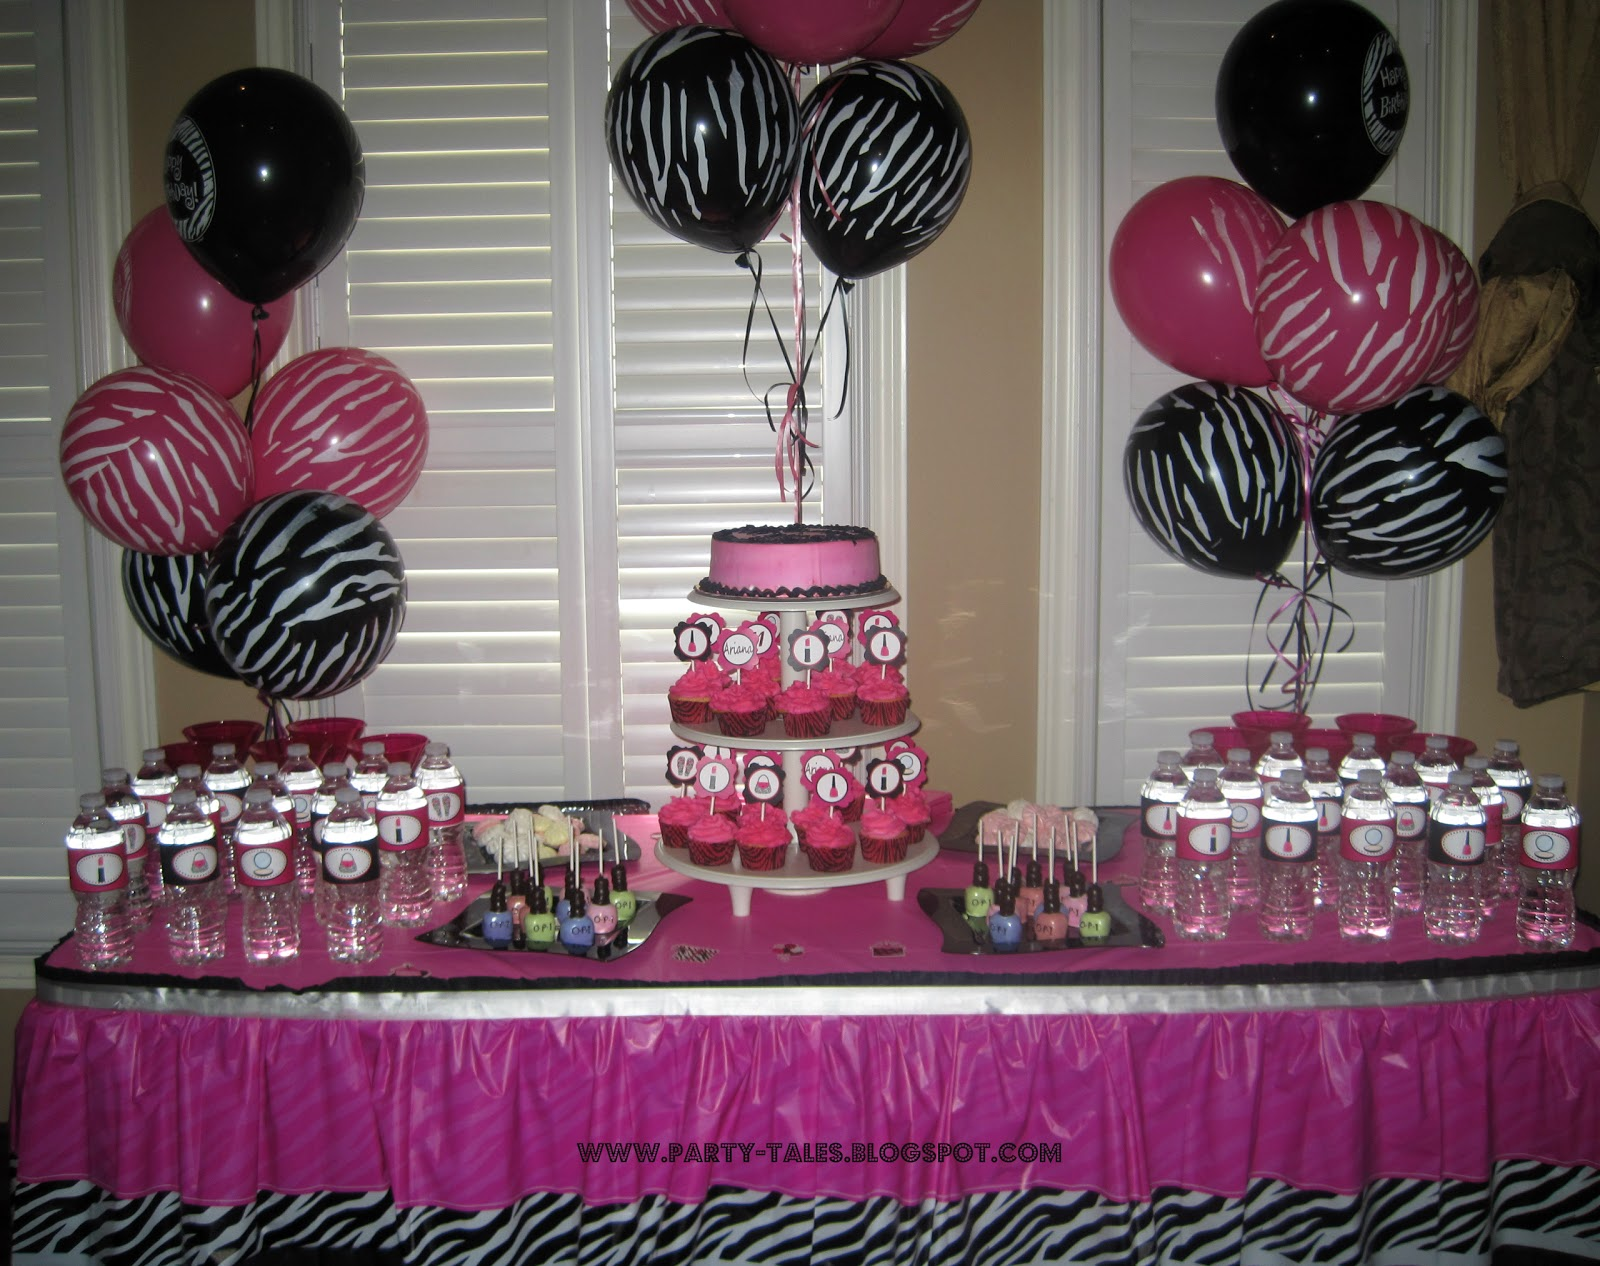 Animal Print Party Decoration Ideas Of Party Tales Birthday Party Zebra Print And Hot Pink